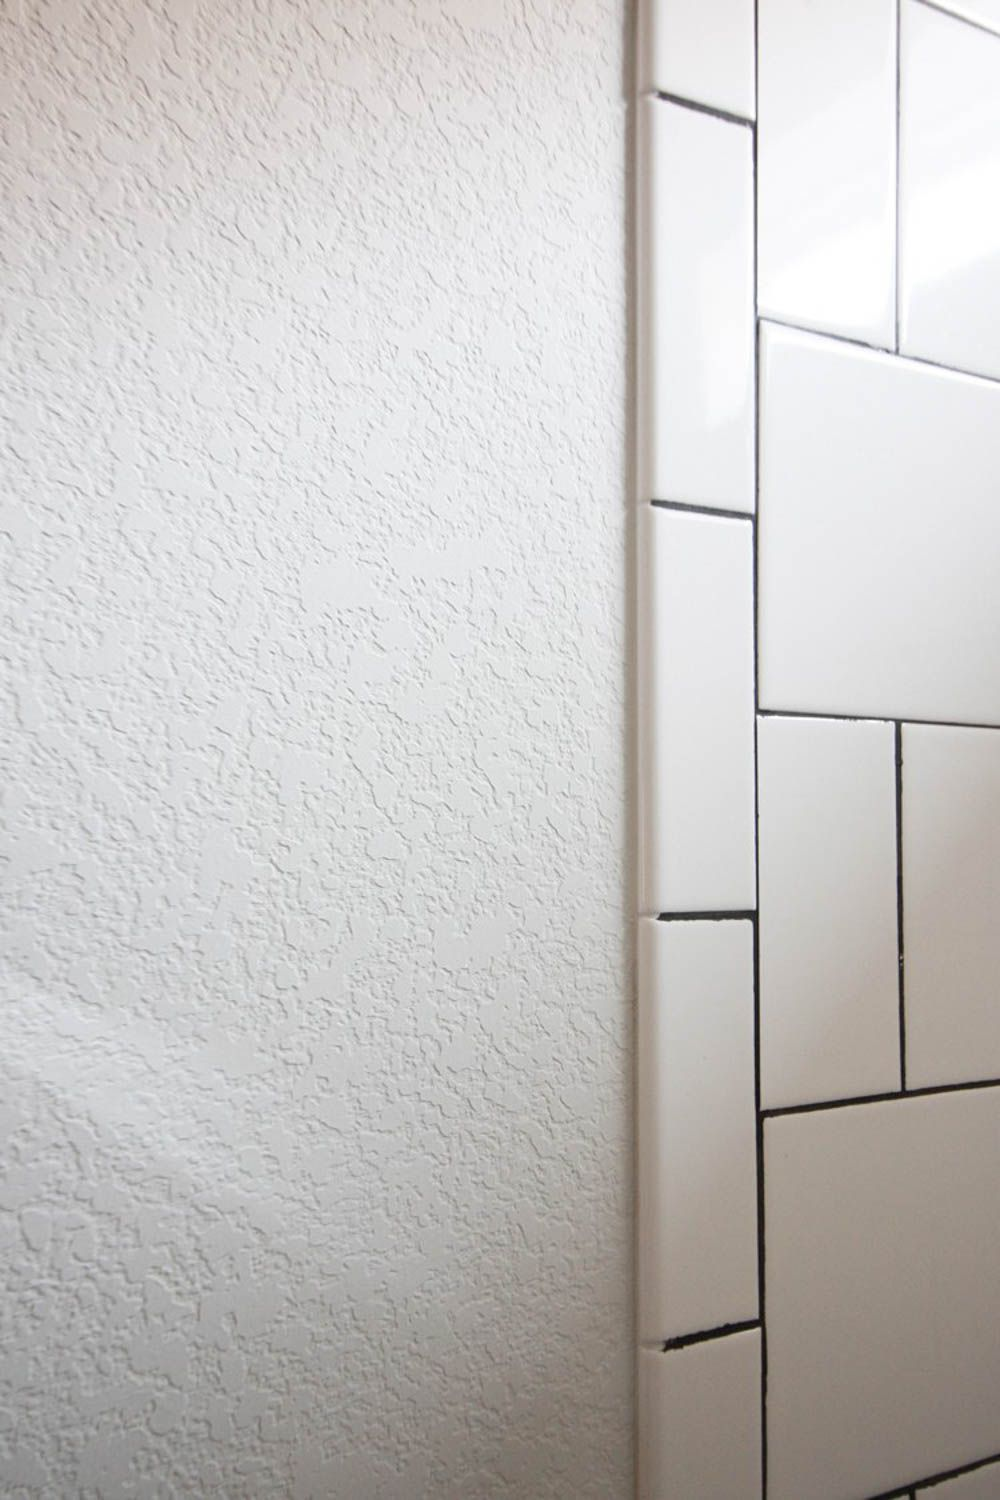 How to Smooth Textured Walls with a Skim Coat Textured